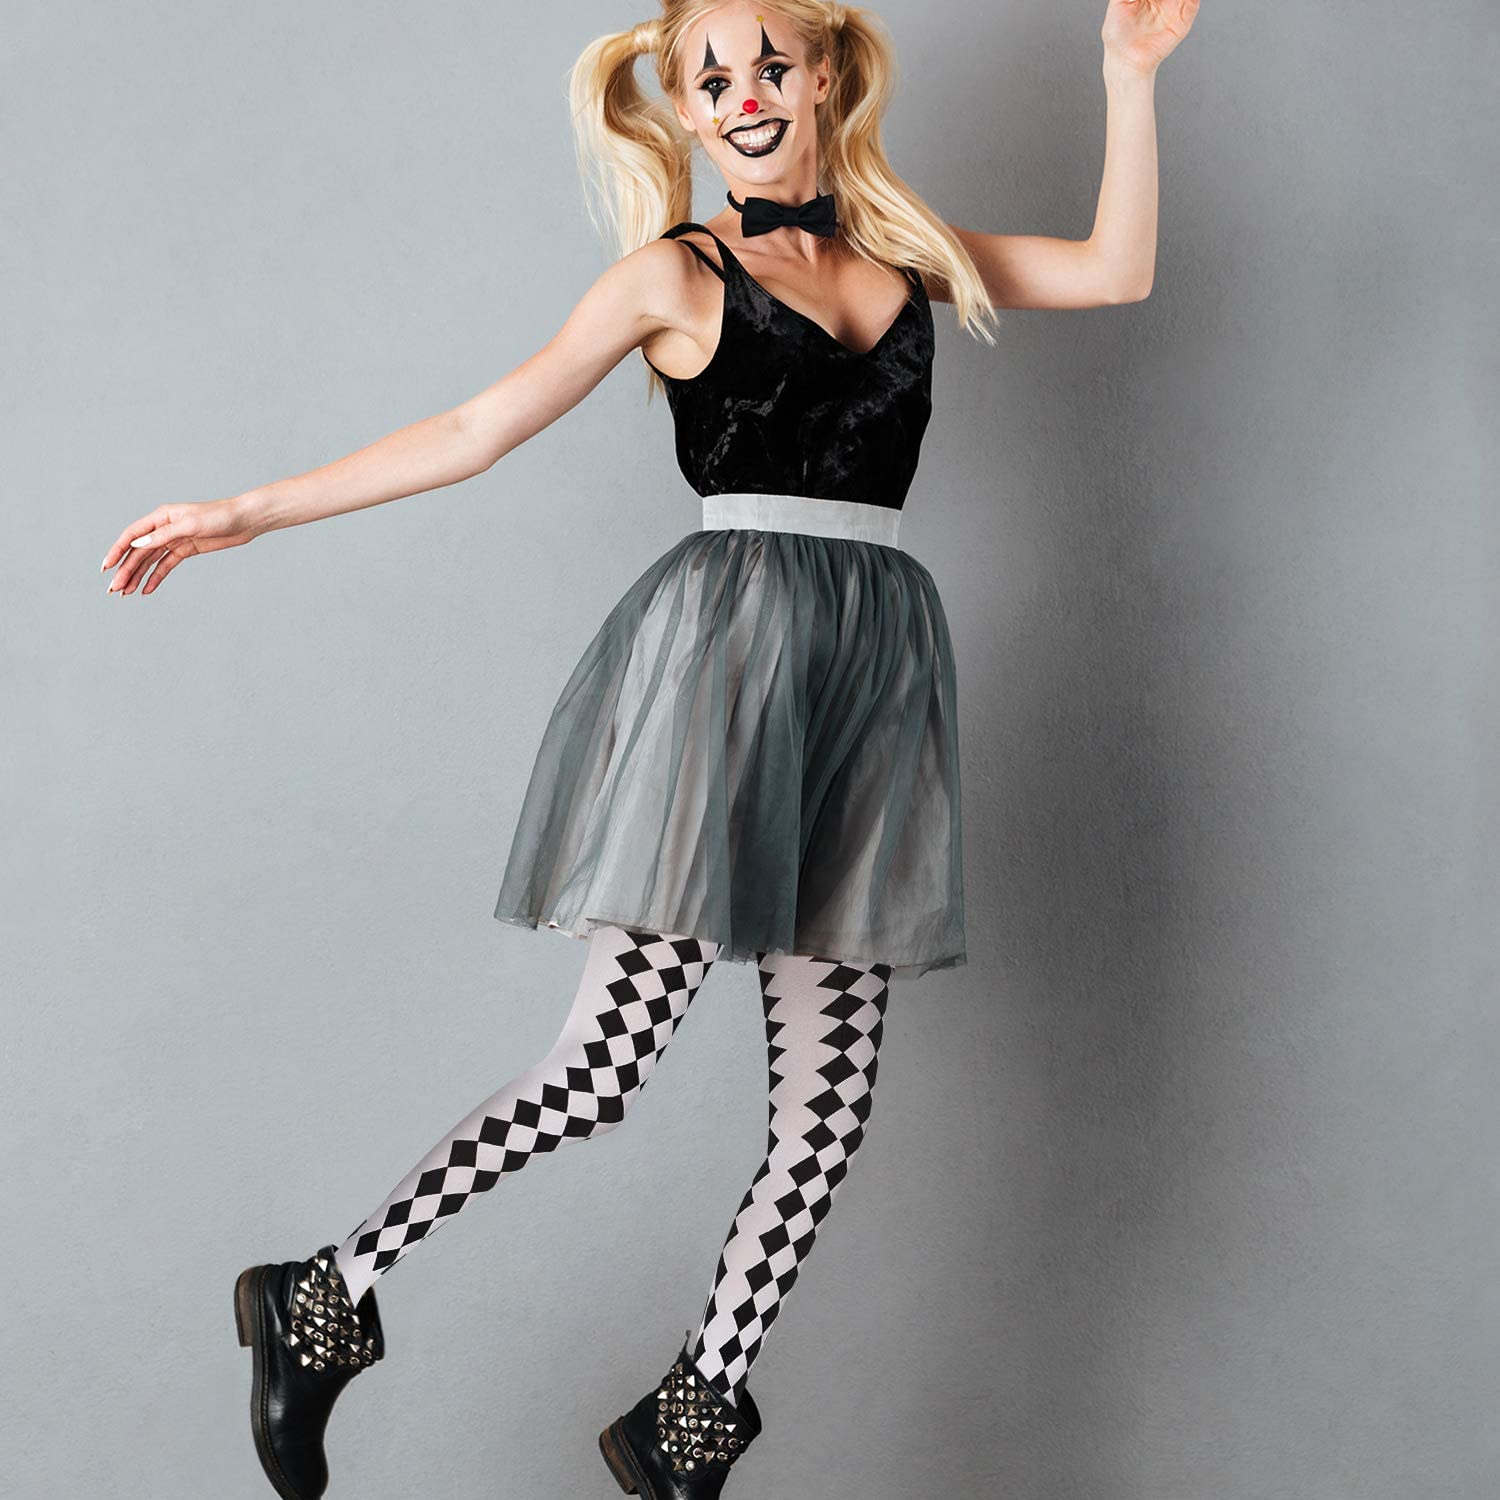 3 Pairs Halloween Striped Tights Full Length Tights Stockings for Women Girls Style 7